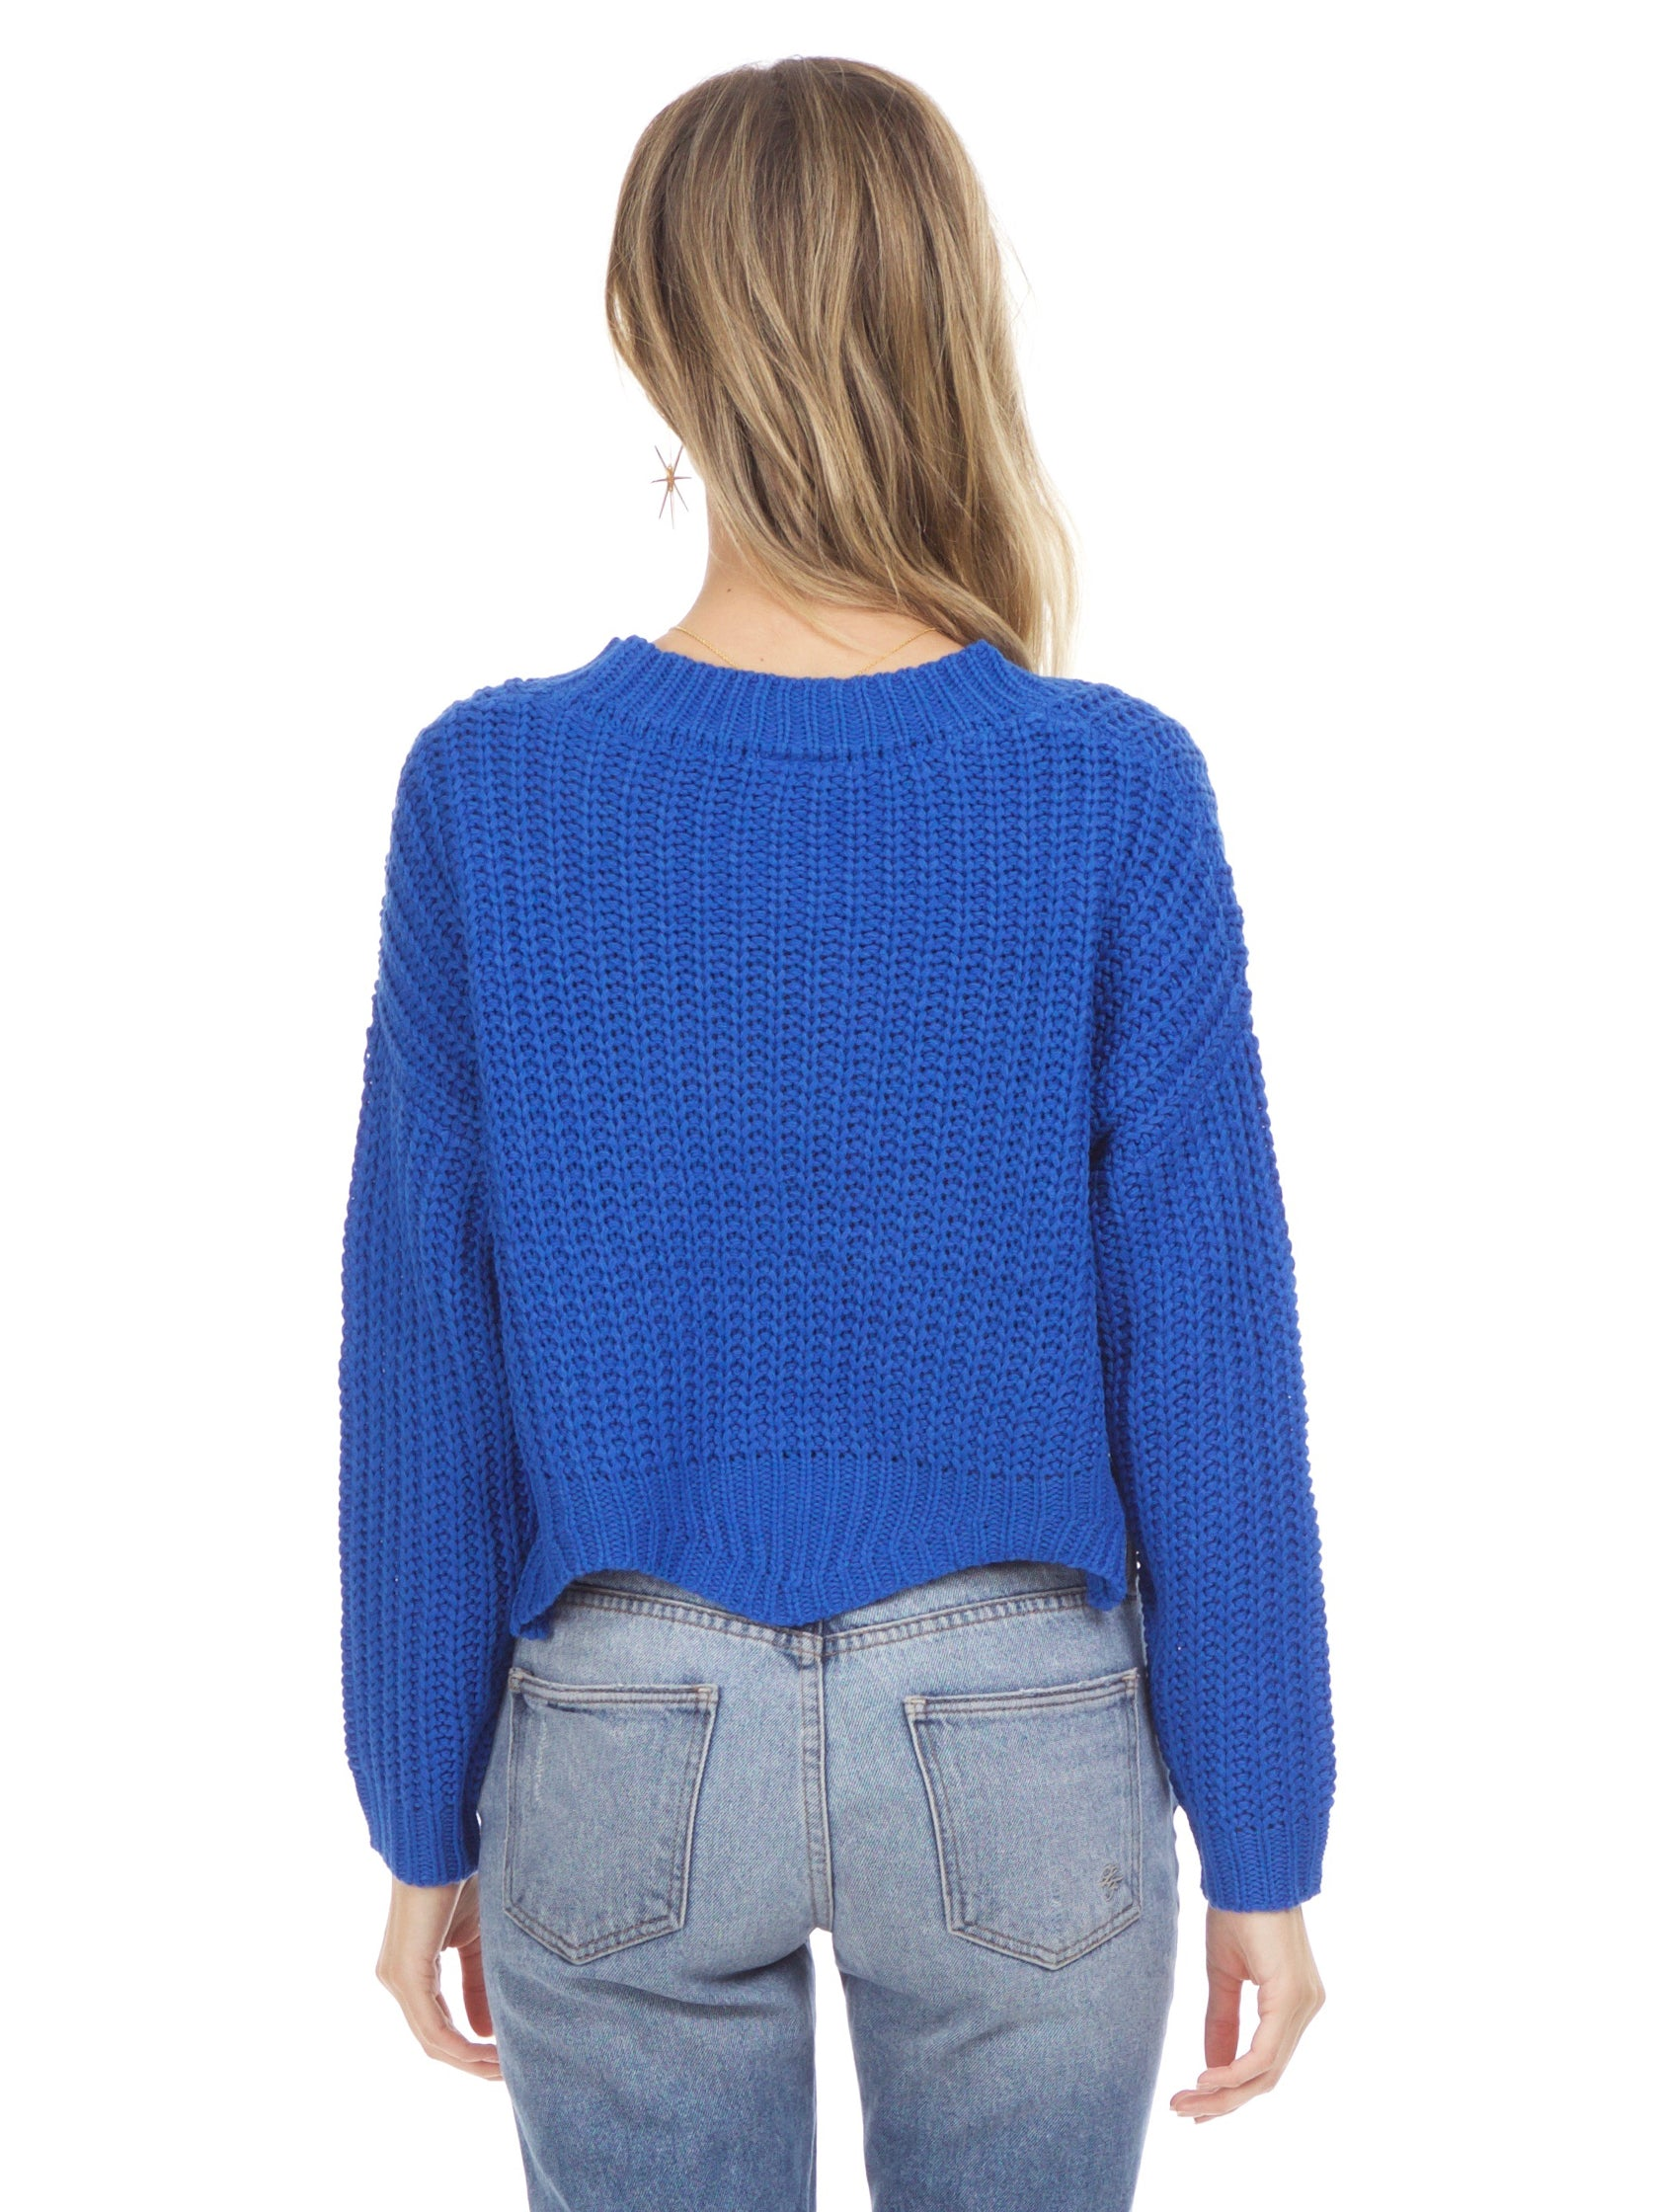 Women outfit in a sweater rental from Sadie & Sage called Scallop Hem Knit Sweater